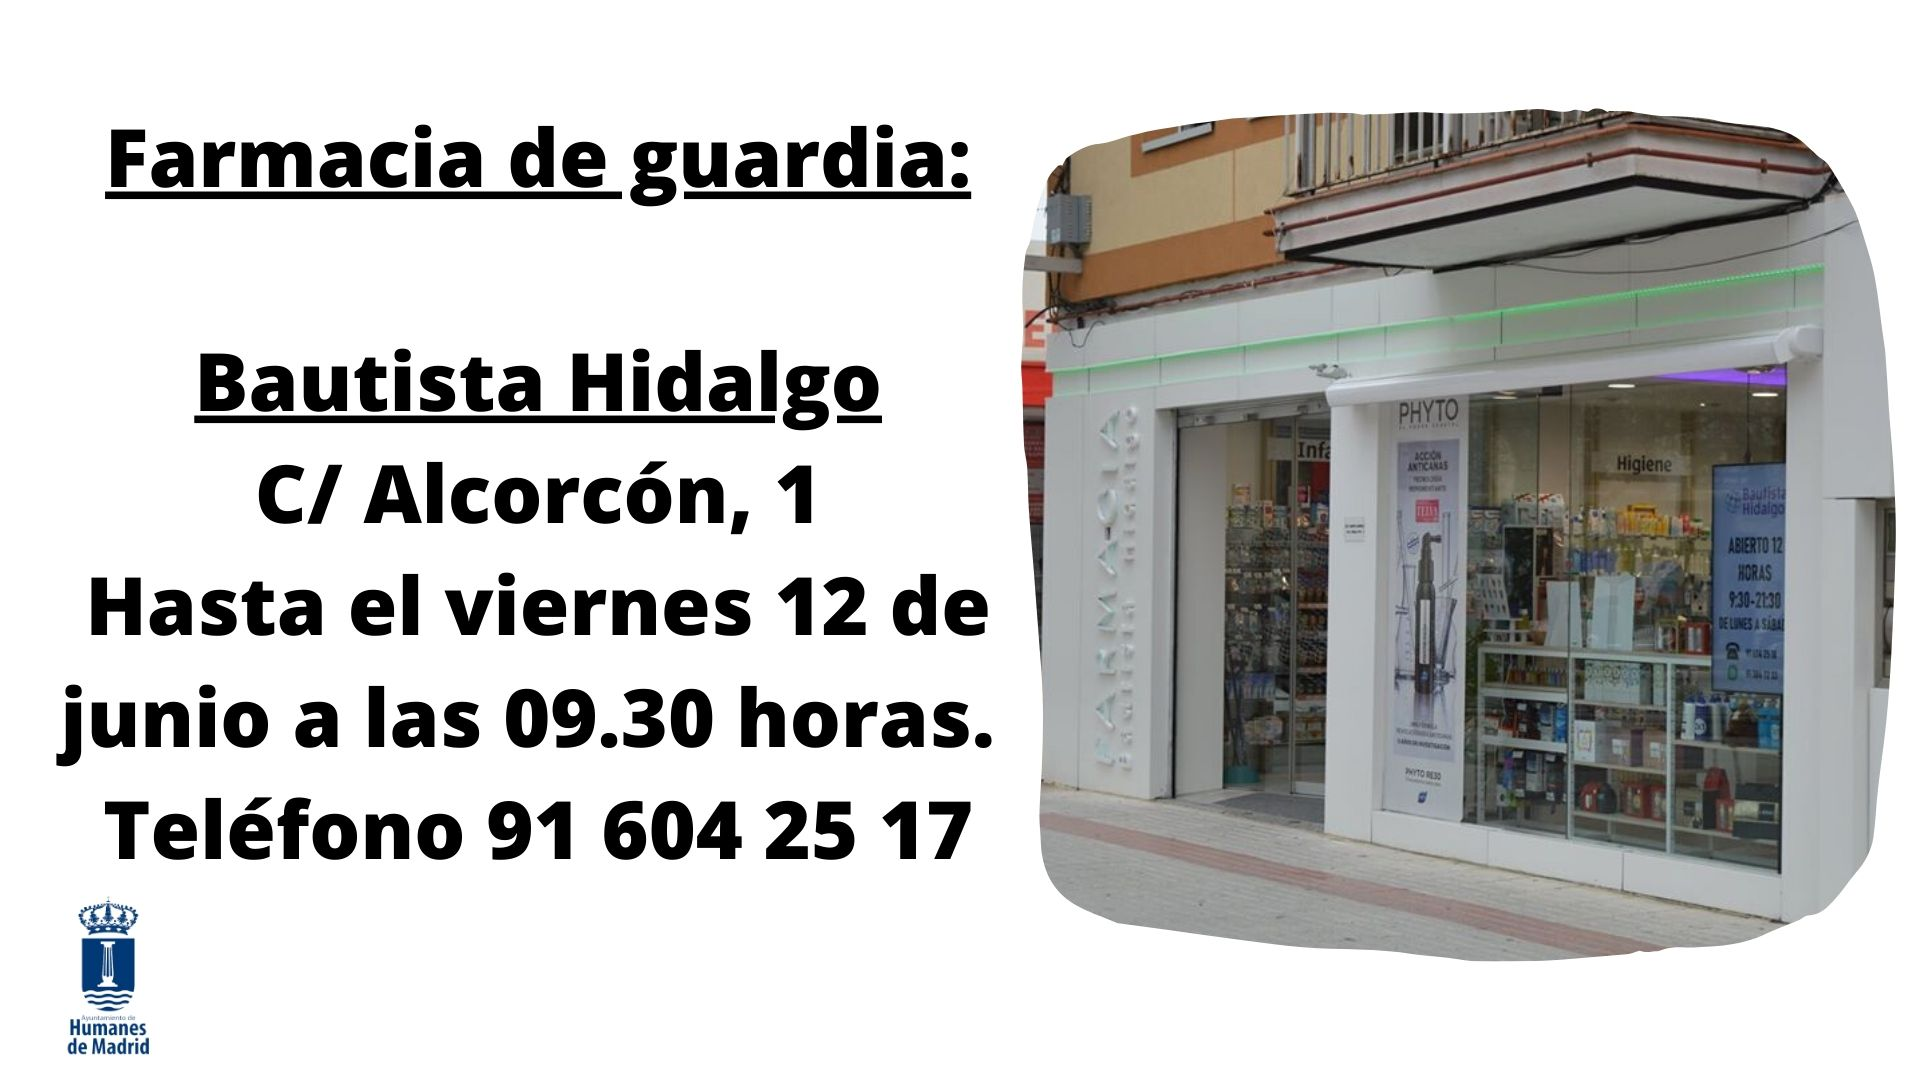 Farmacia de guardia hasta el 12 de junio